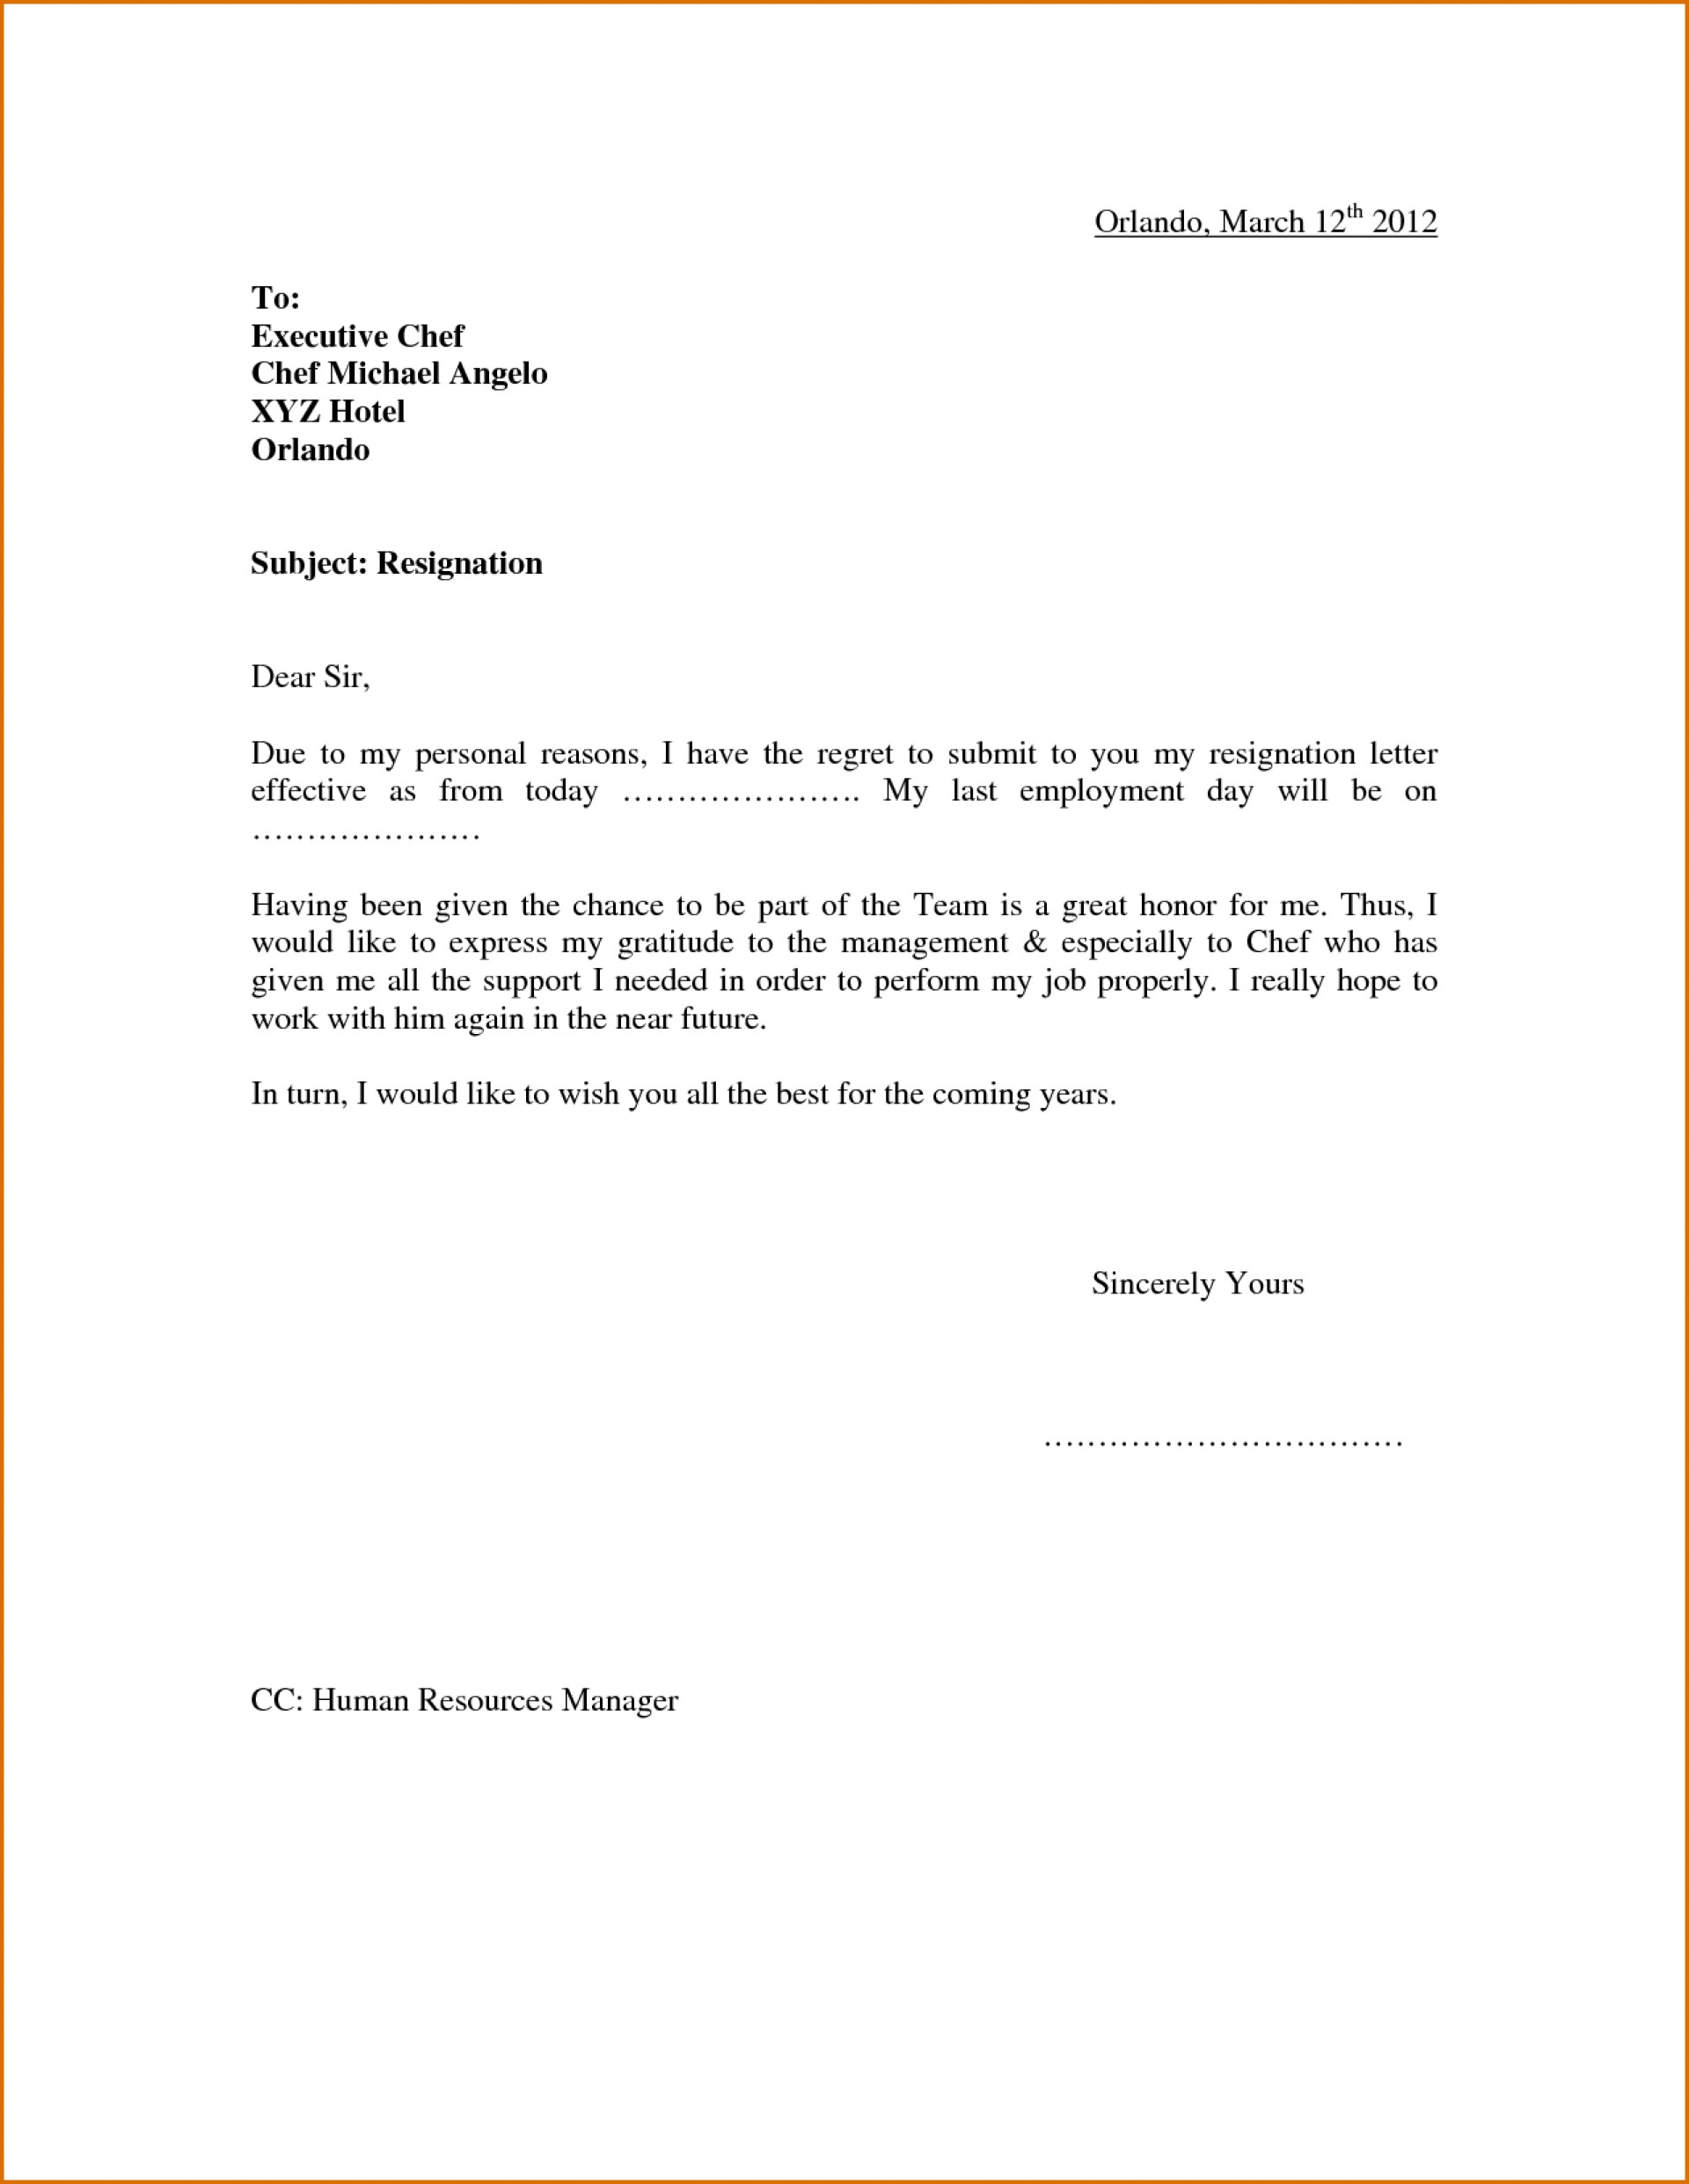 Resignation Letter Examples For Teachers from www.addictionary.org